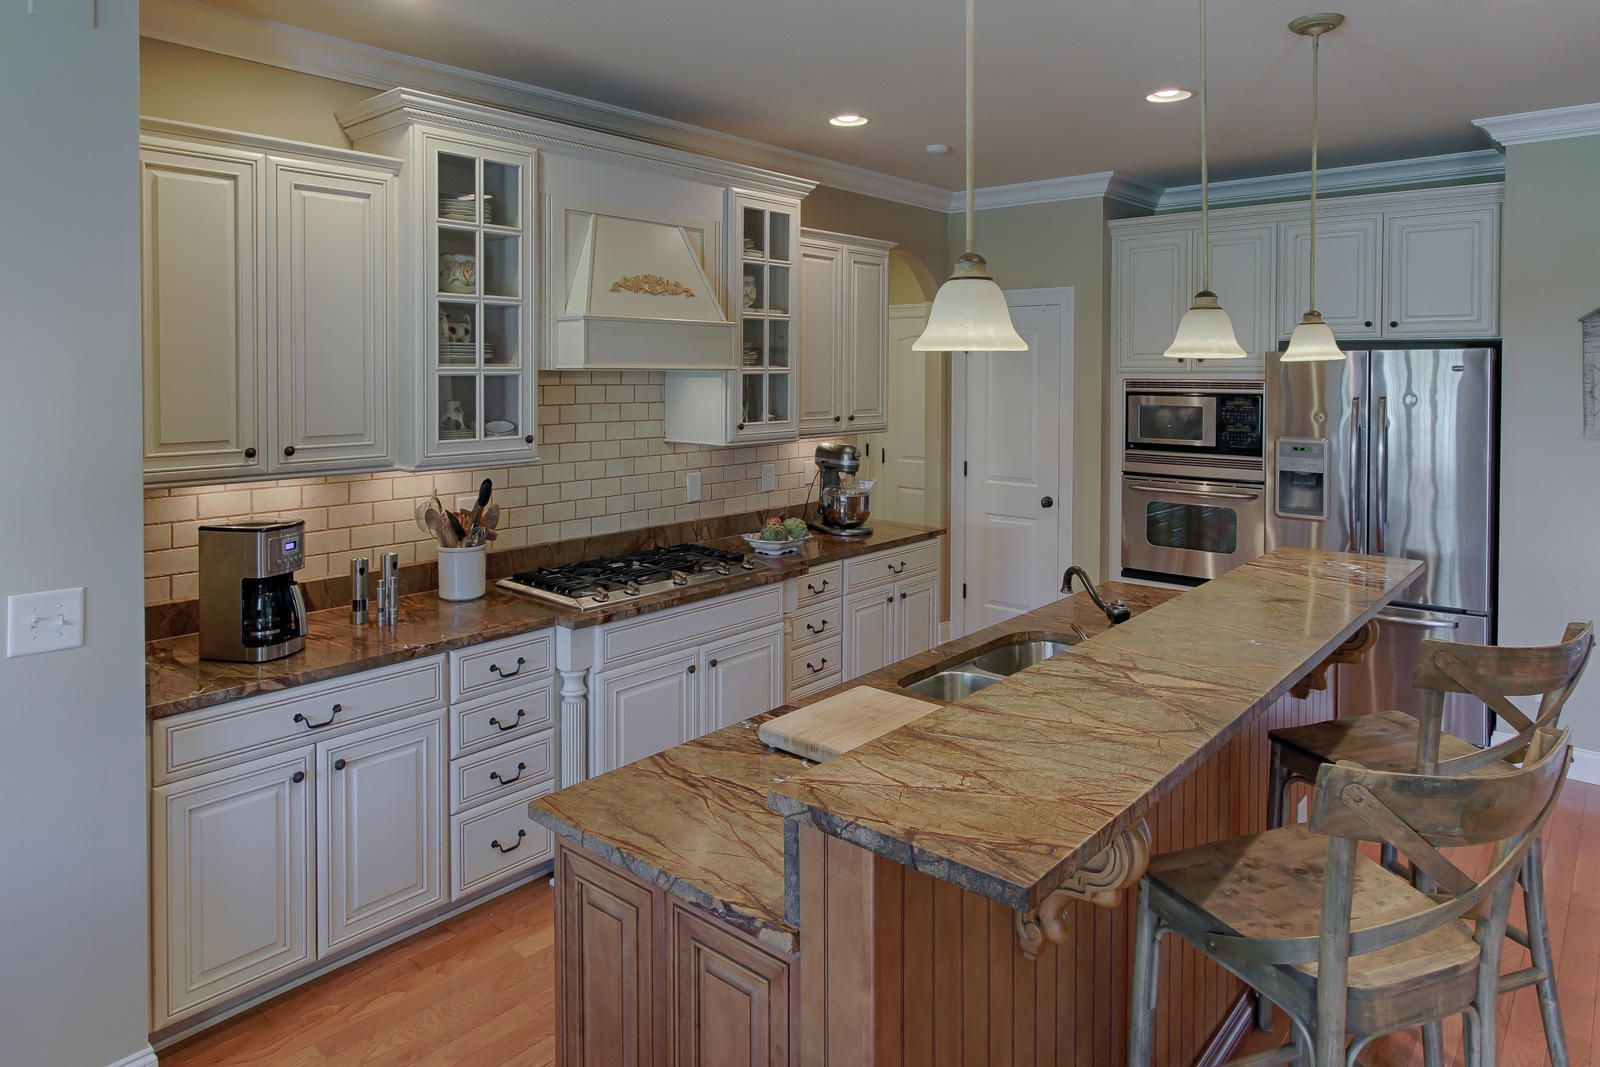 White Cabinets and Granite Counters